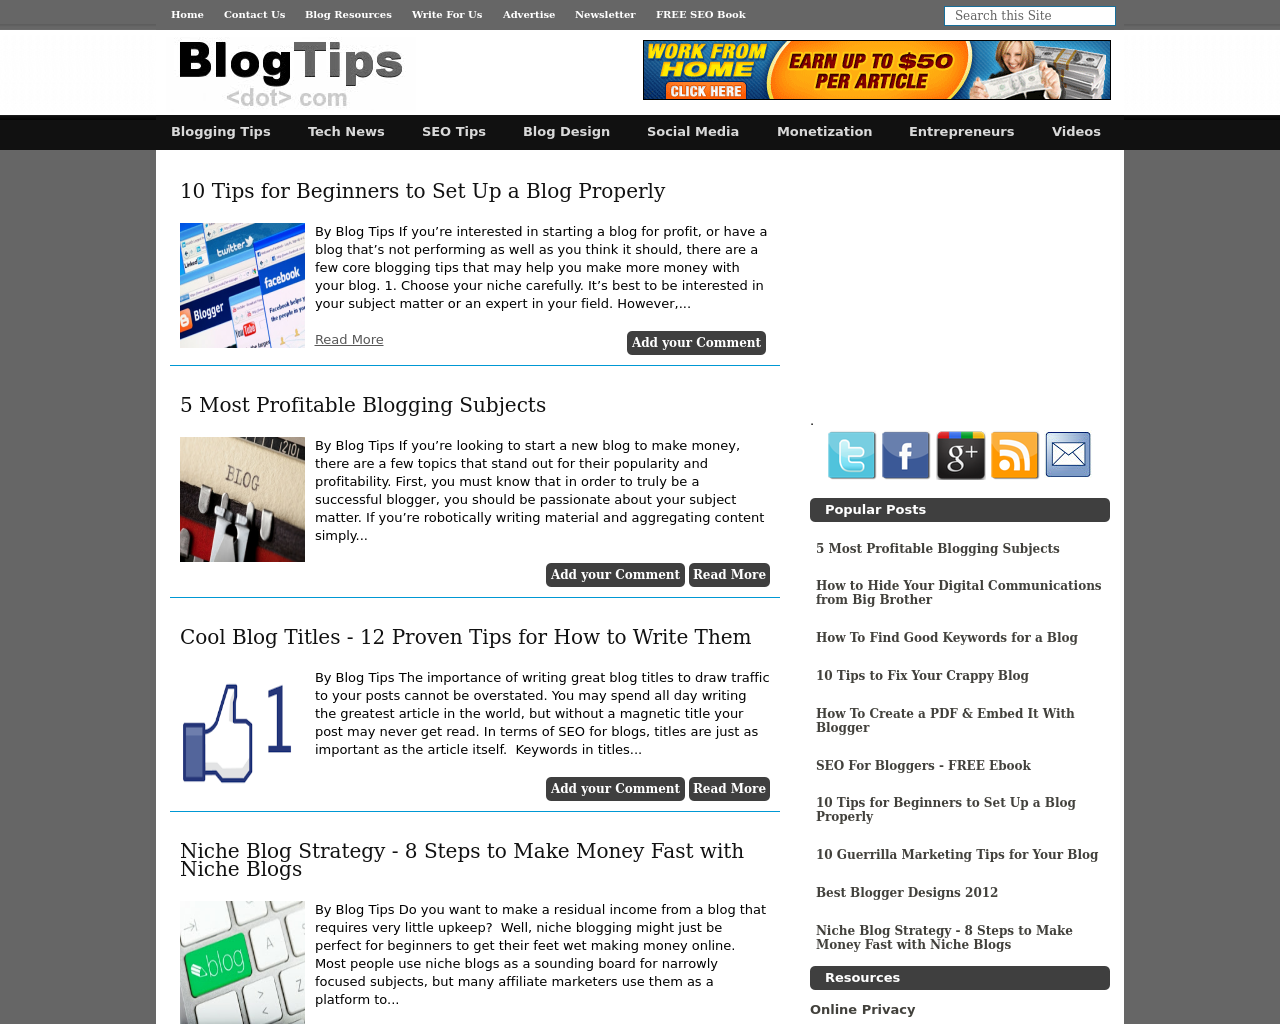 BlogTips-Advertising-Reviews-Pricing